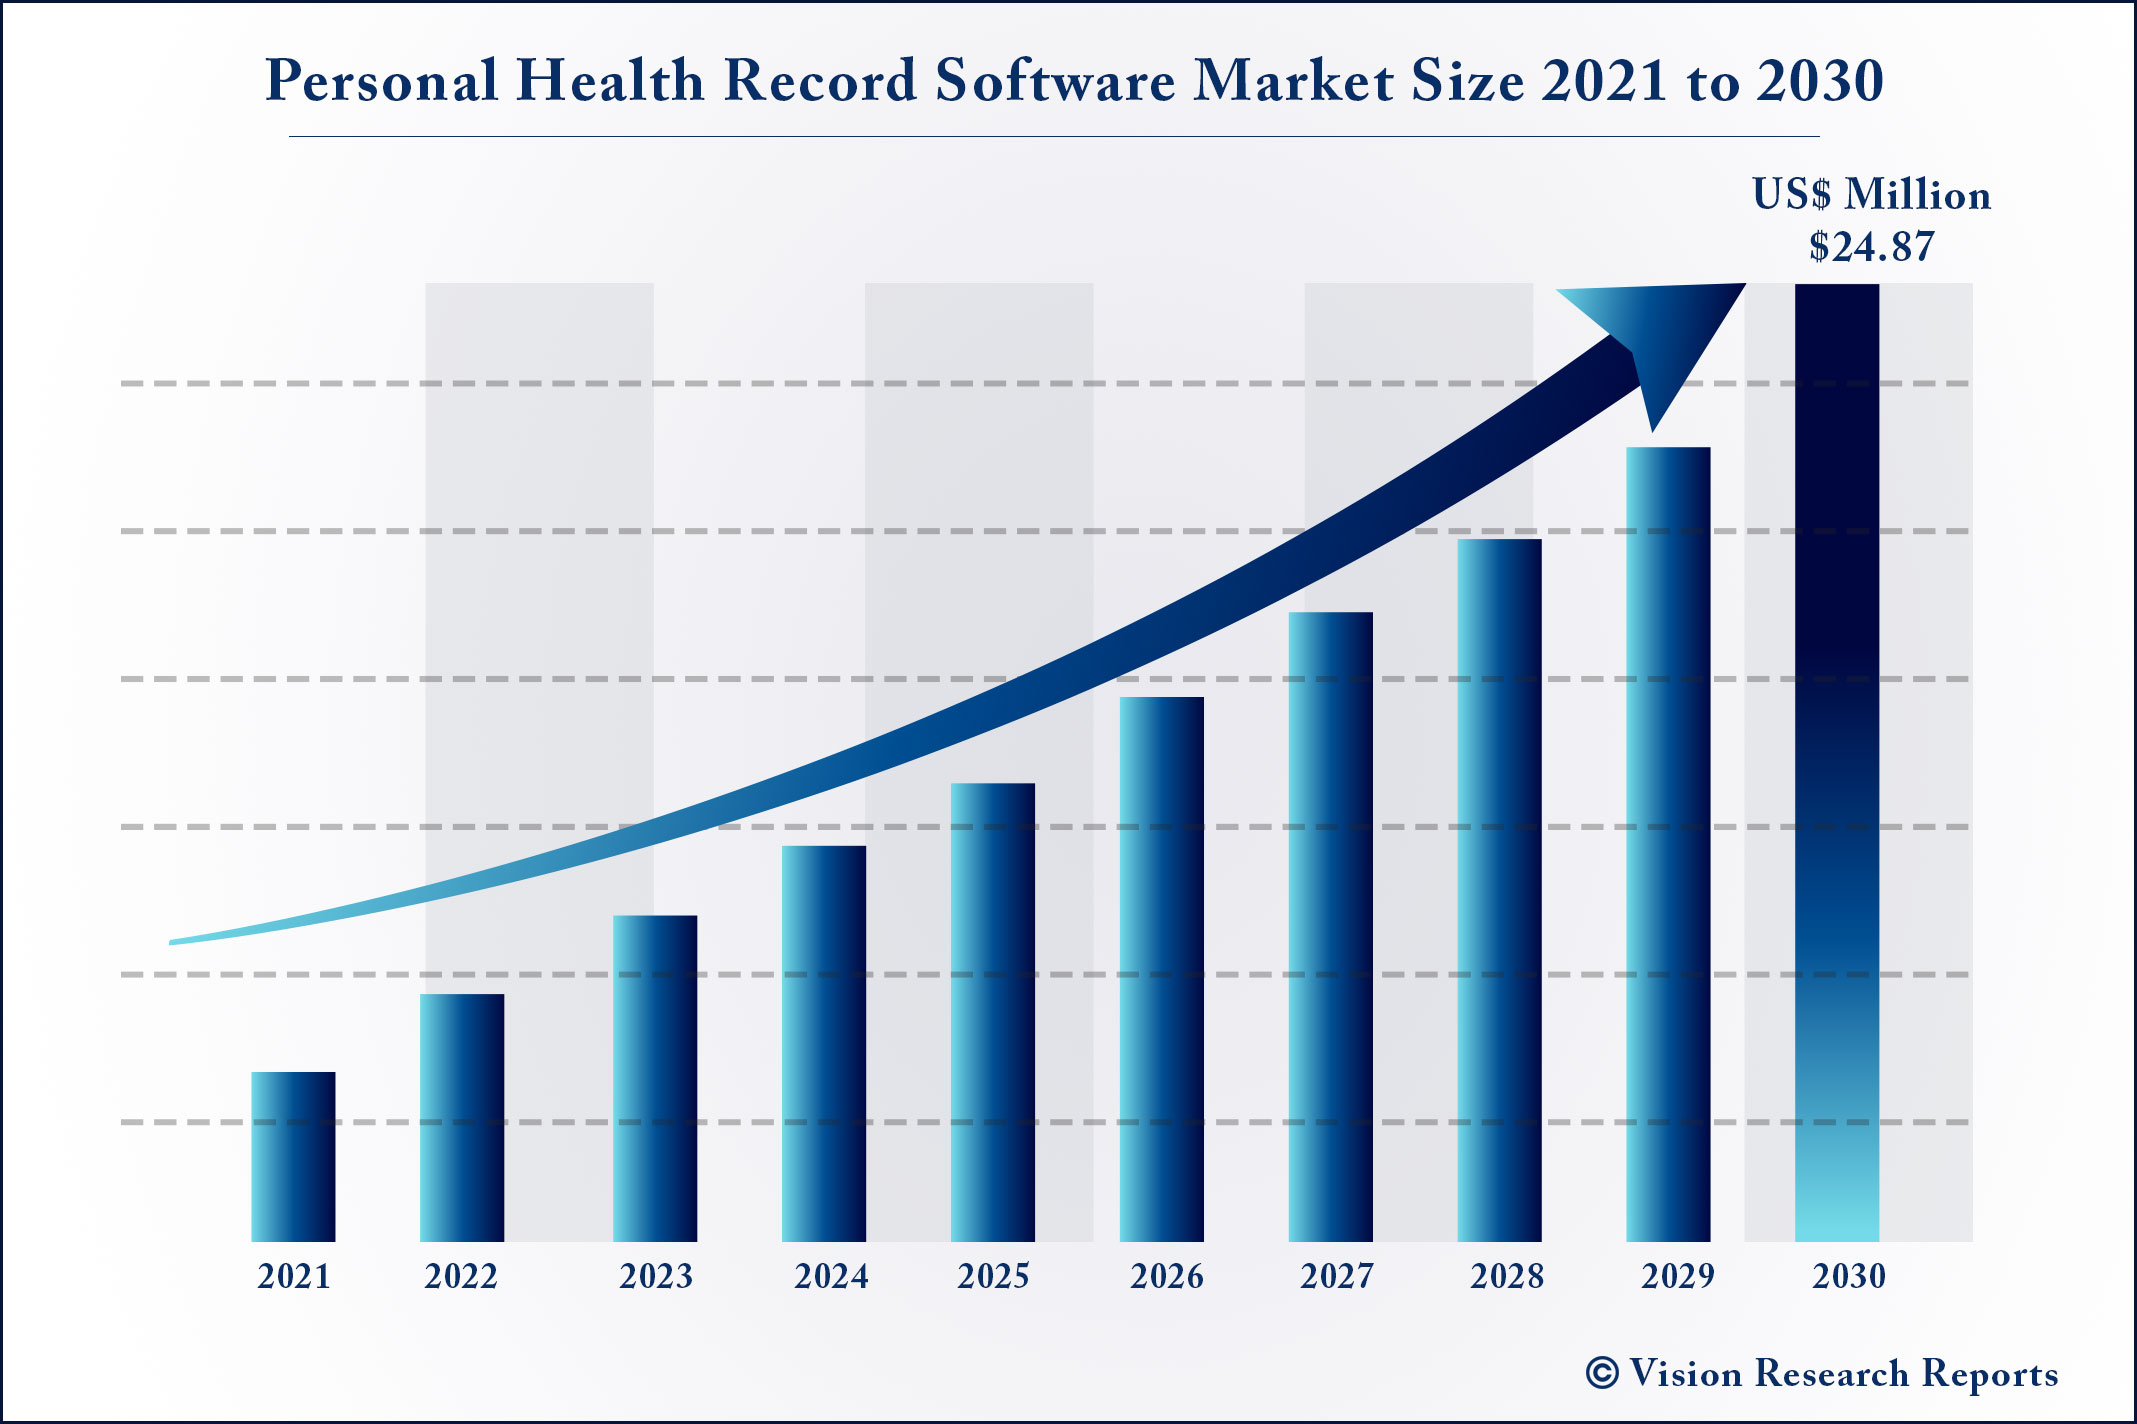 Personal Health Record Software Market Size 2021 to 2030